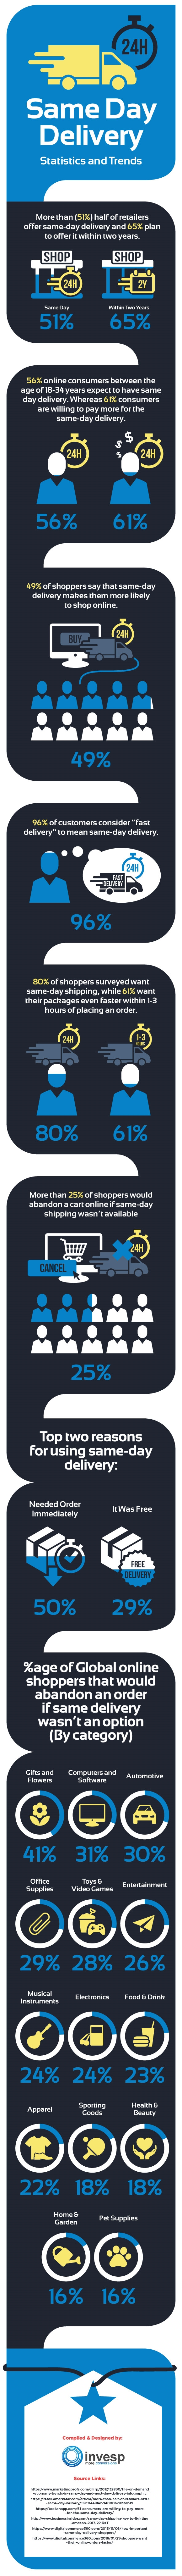 The Growing Importance of Same Day Delivery for Online Consumers [Infographic]